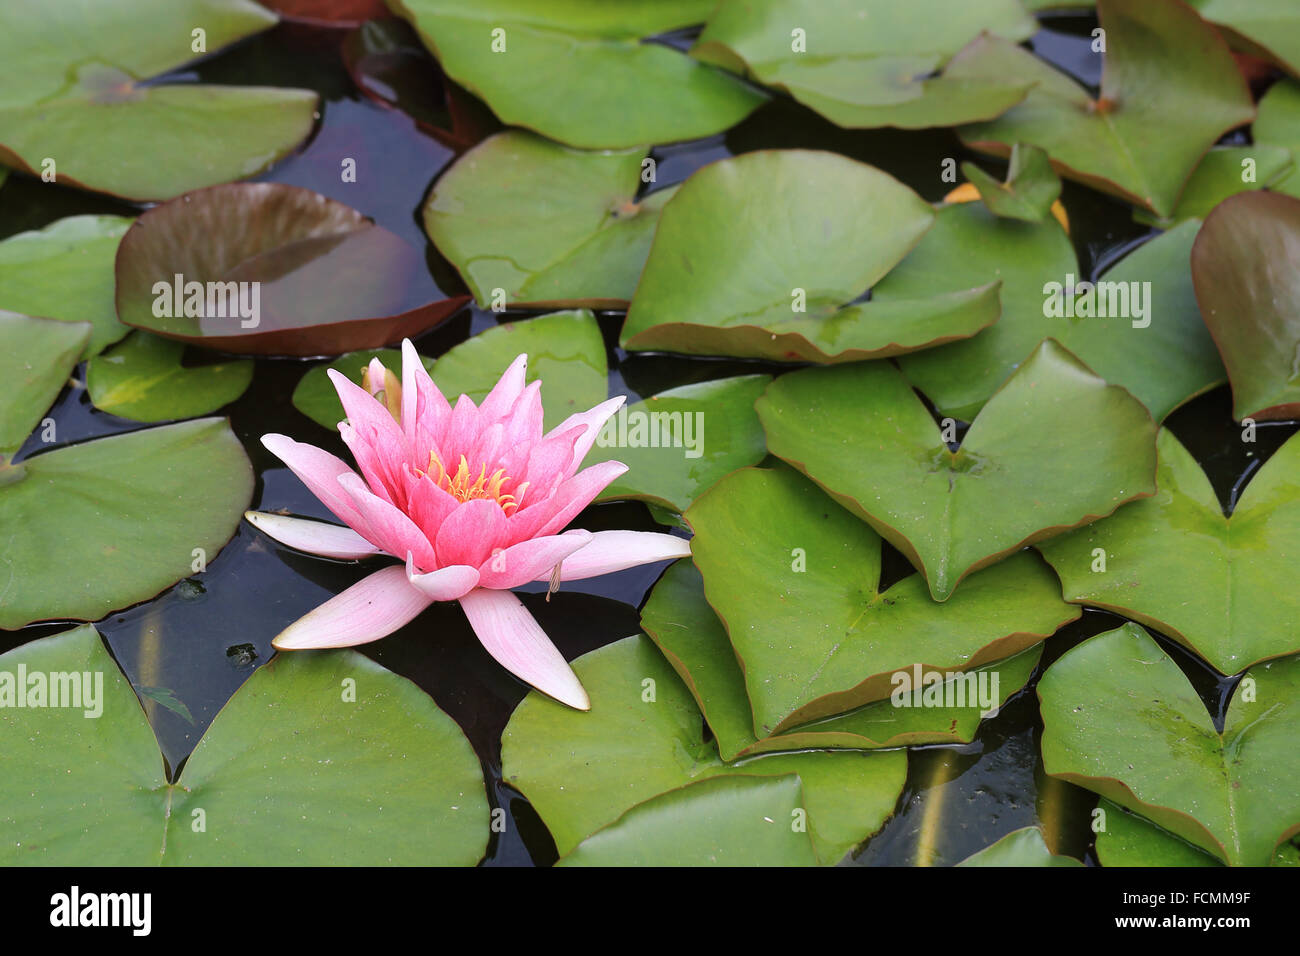 Lily Pads In A Pond Stock Photos Lily Pads In A Pond Stock Images